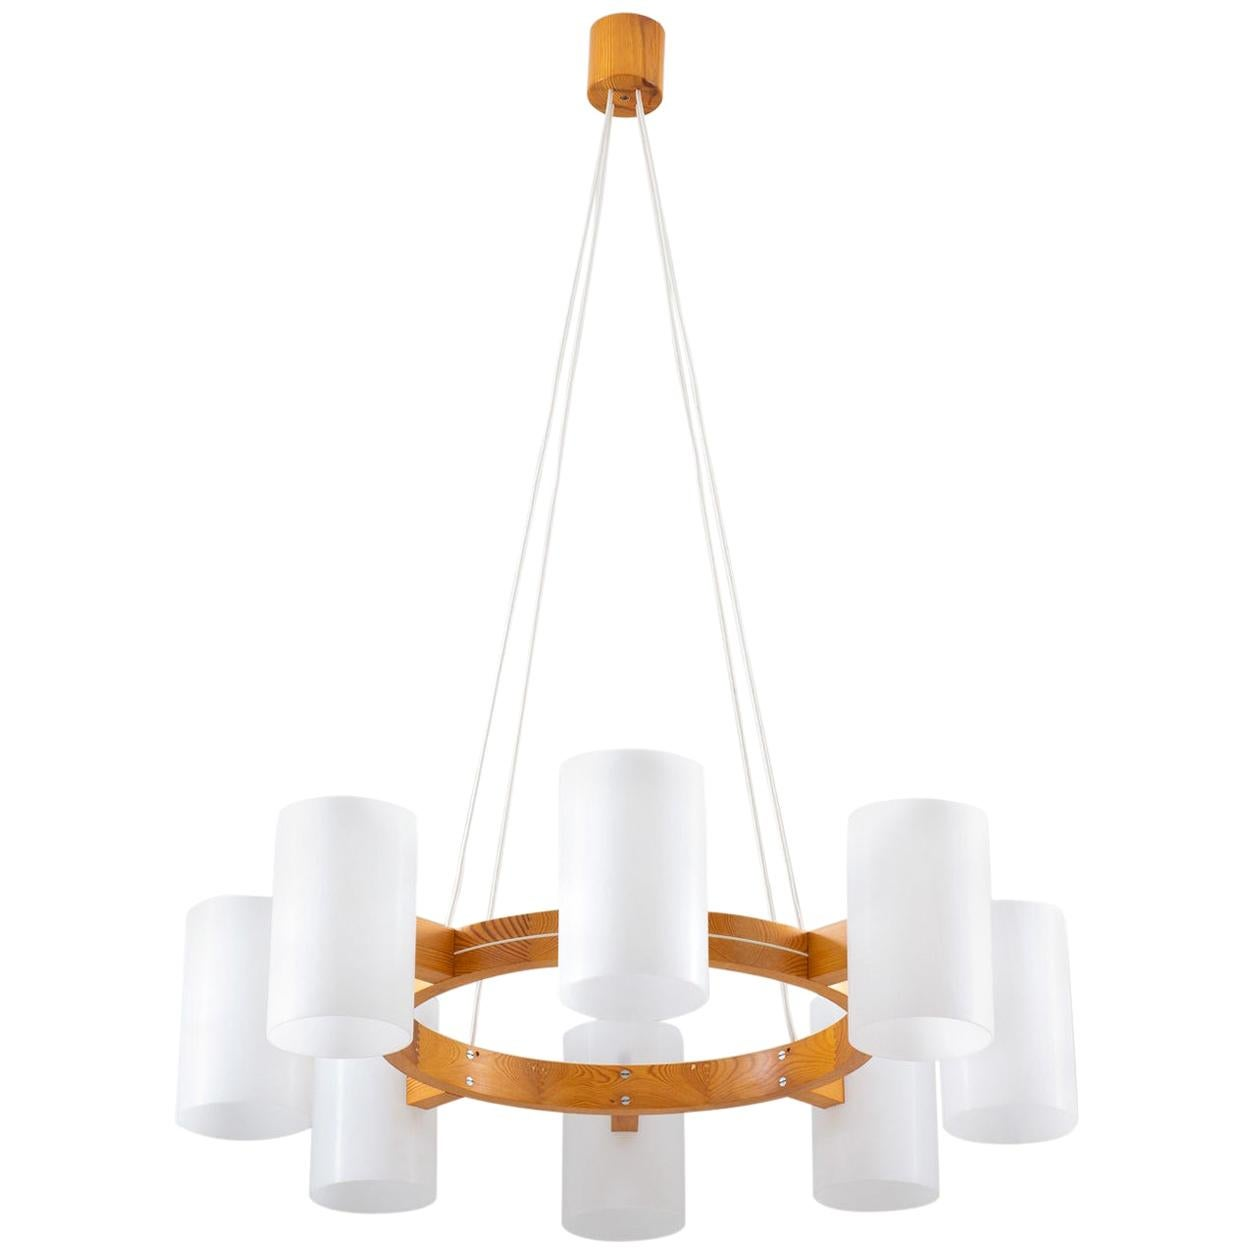 Large Swedish Midcentury Chandelier in Pine and Acrylic by Luxus